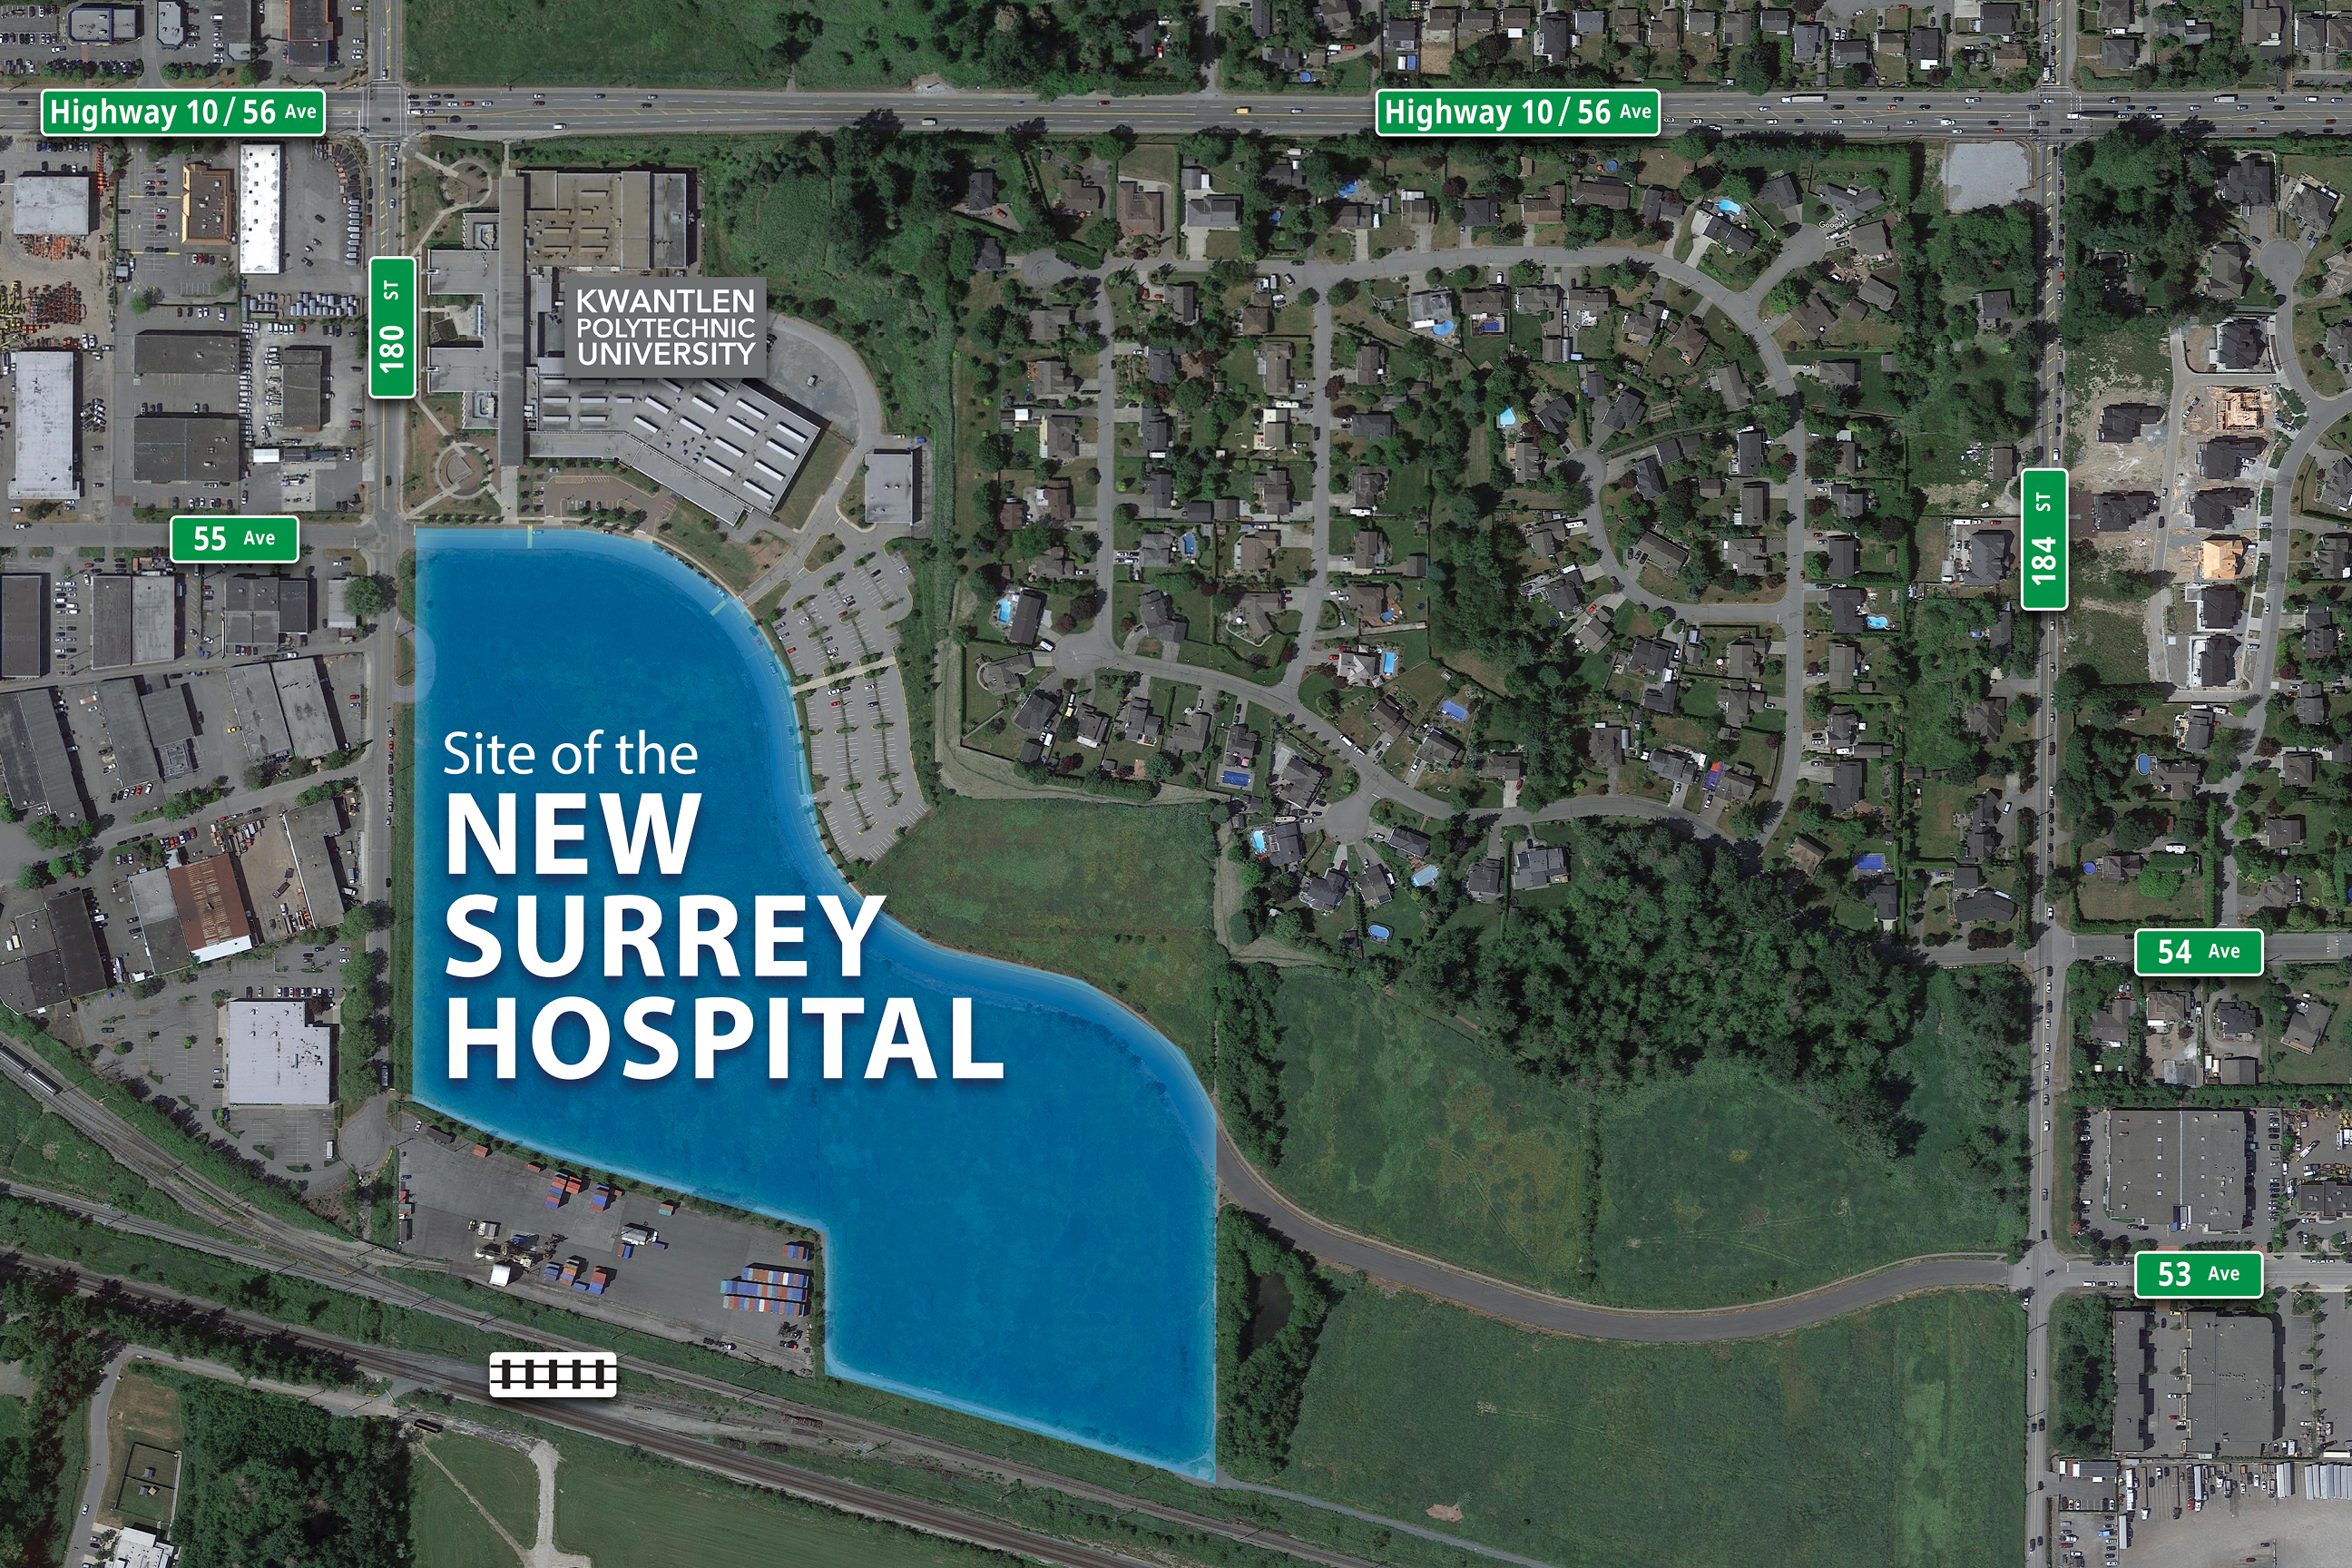 Surrey is getting a new hospital